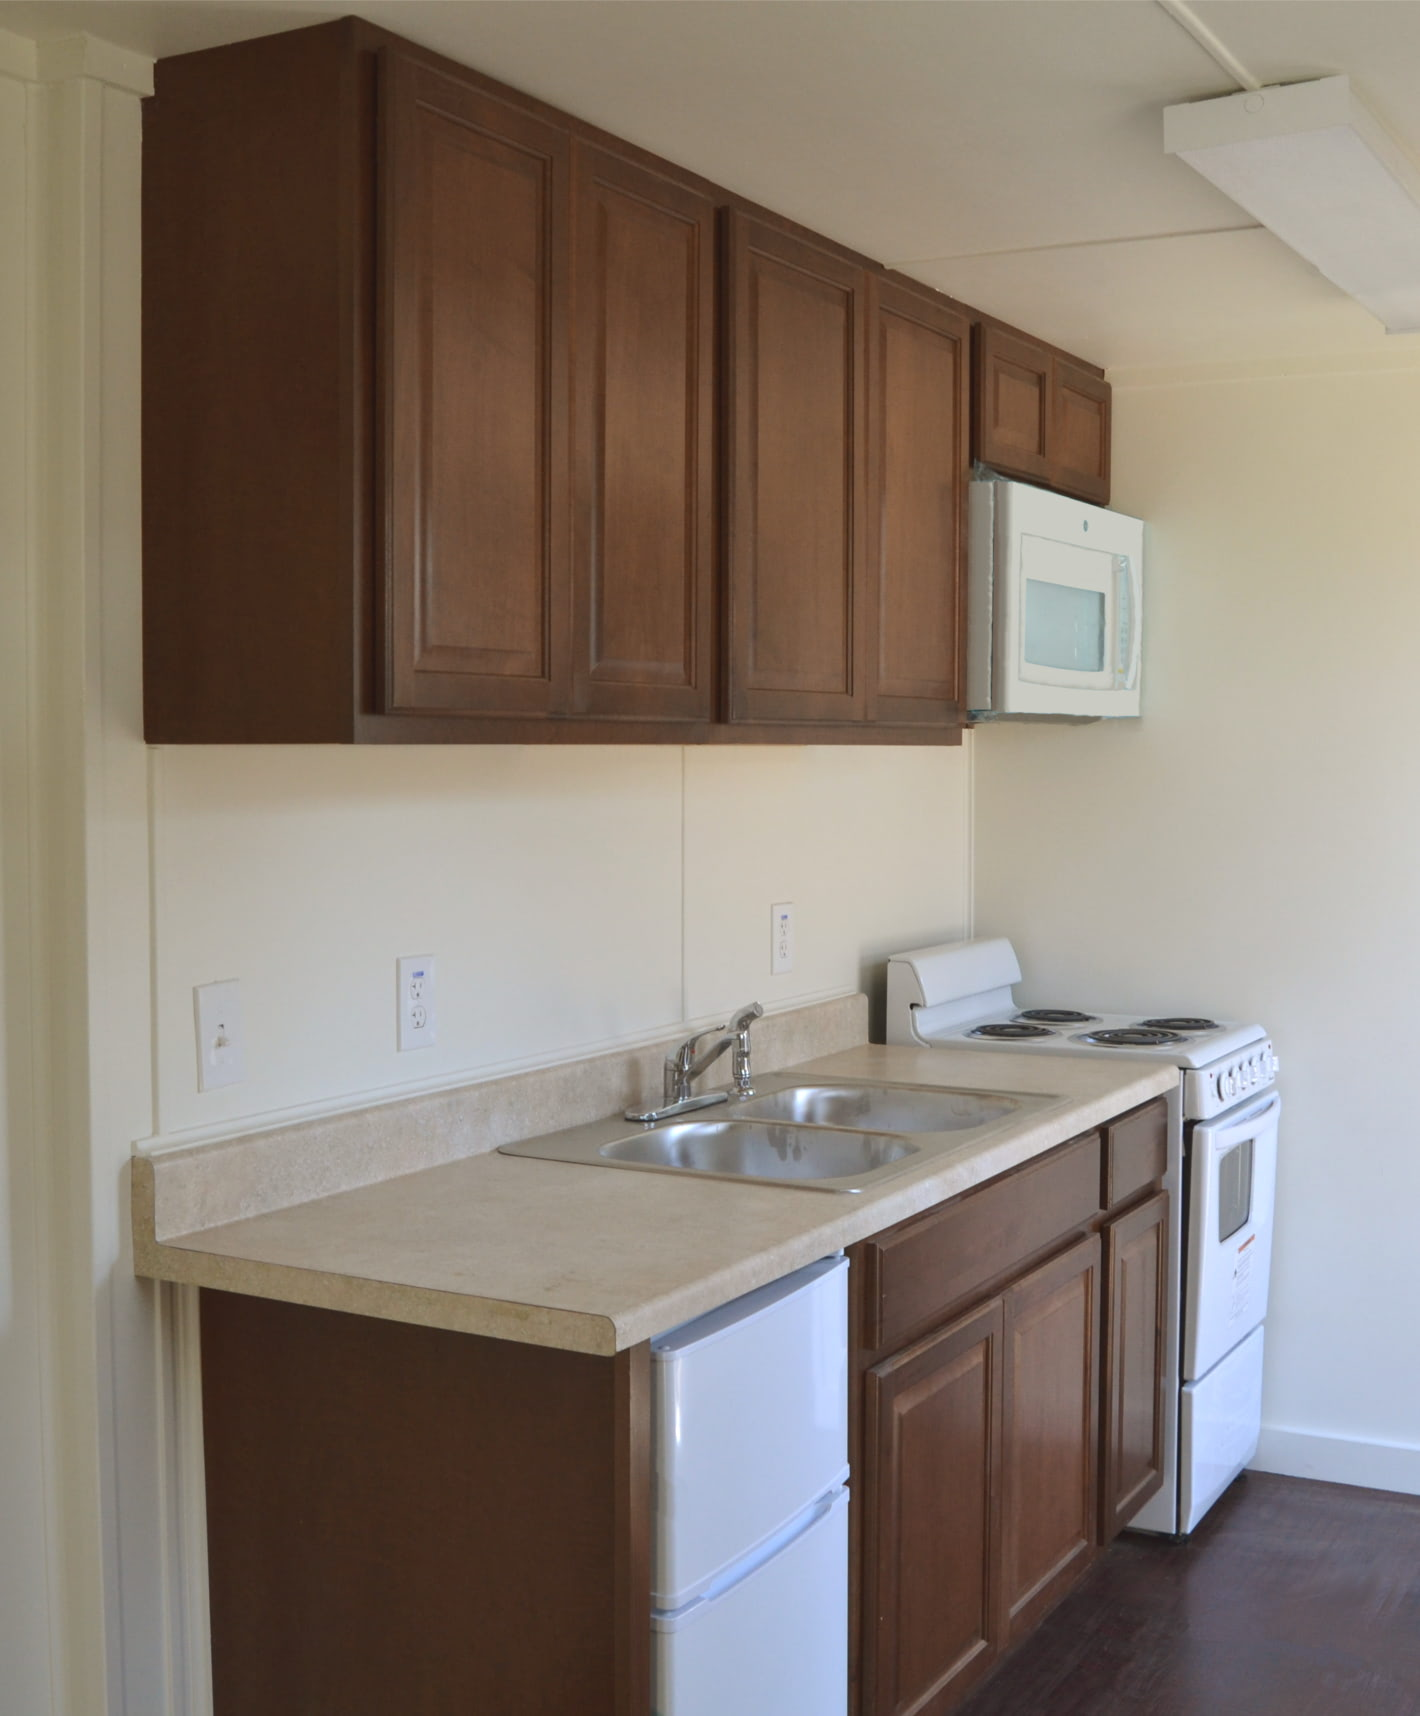 Interior of kitchenette in oil & gas housing unit.